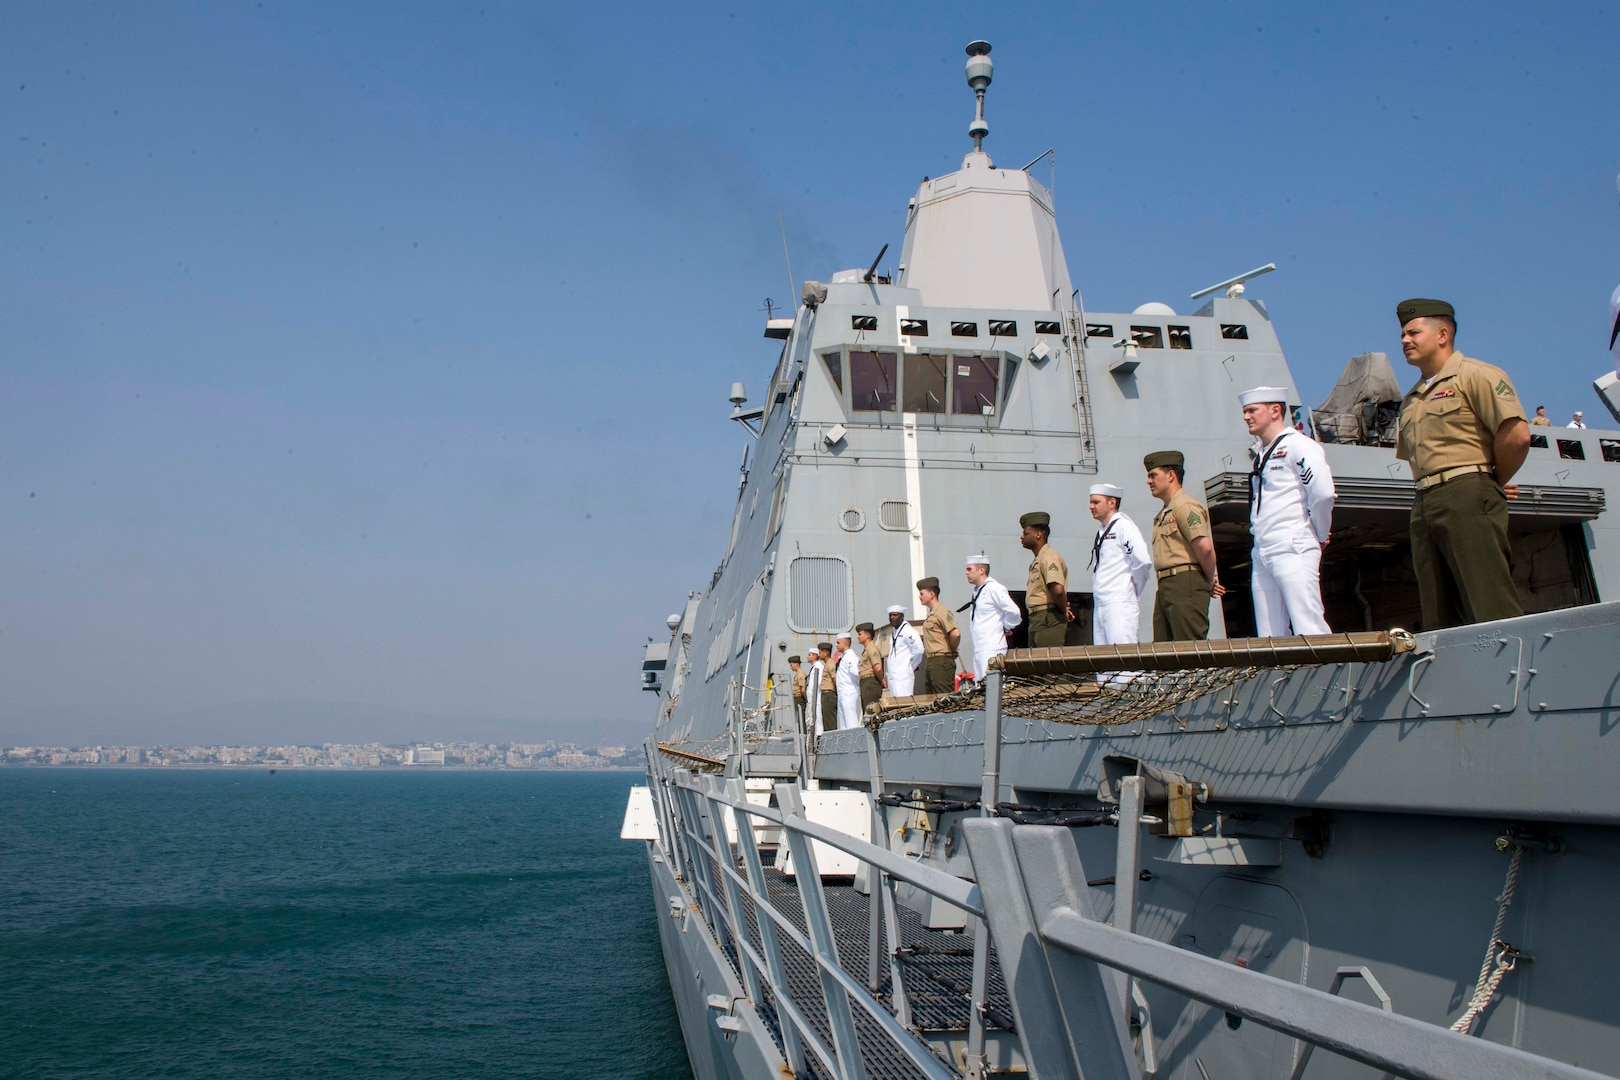 Sailors assigned to the San Antonio-class amphibious transport dock ship USS Anchorage (LPD 23) and Marines assigned to the 13th Marine Expeditionary Unit (MEU) man the rails during a port visit to Visakhapatnam while on a deployment of the Essex Amphibious Ready Group (ARG) and 13th MEU. The Essex ARG/ 13th MEU is a capable and lethal Navy-Marine Corps team deployed to the 7th Fleet area of operations to support regional stability, reassure partners and allies and maintain a presence postured to respond to any crisis ranging from humanitarian assistance to contingency operations.